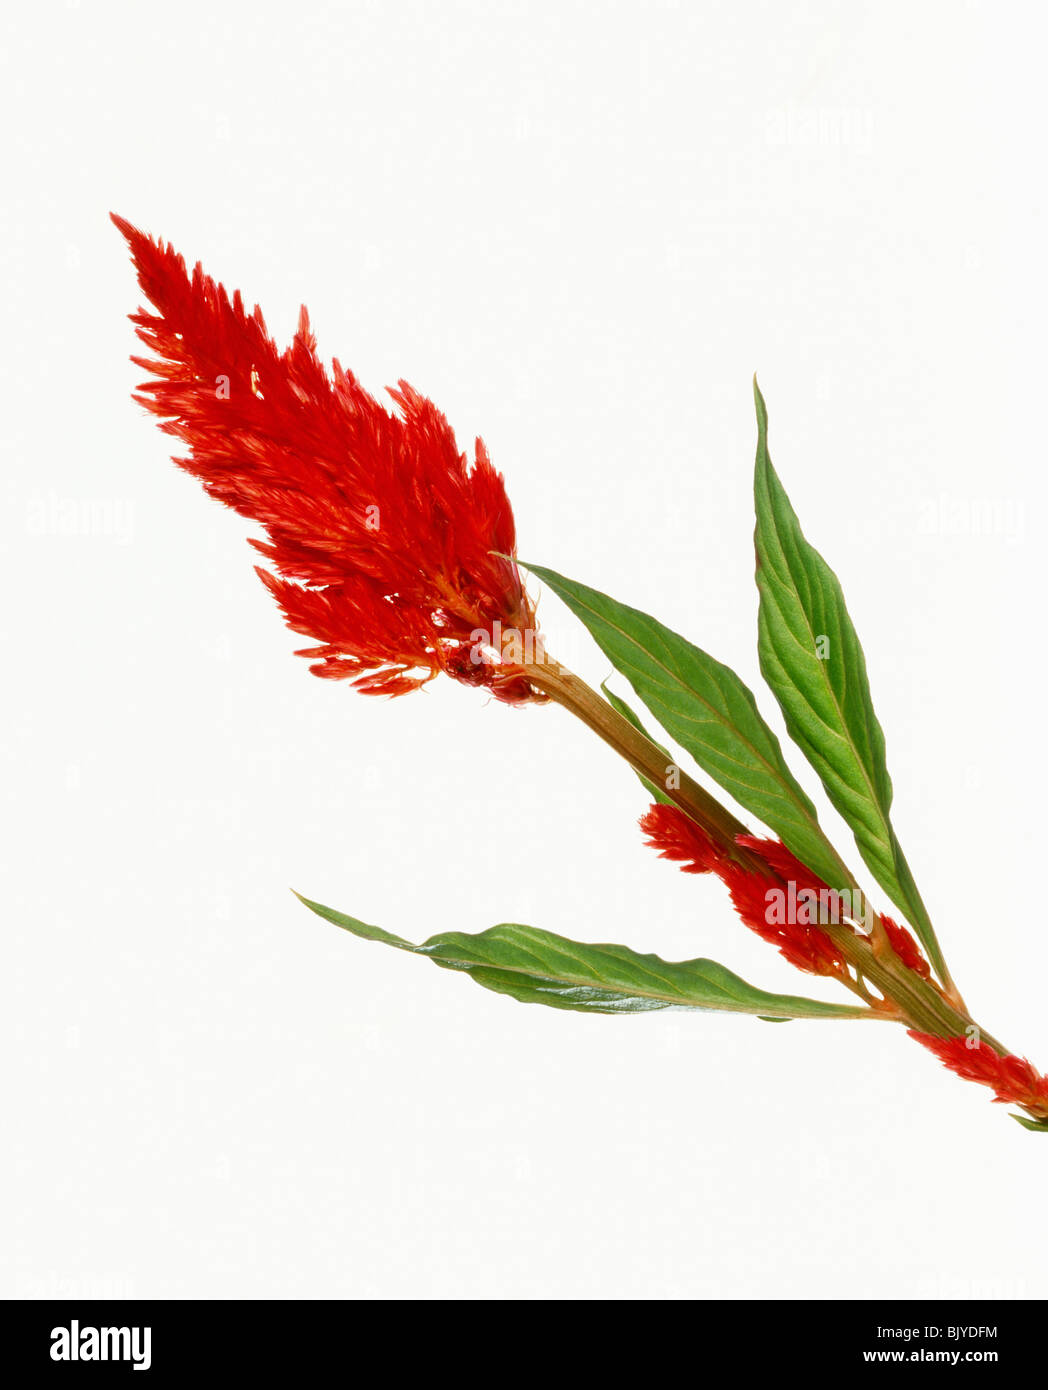 Vivid red flower, celosia argentea Stock Photo